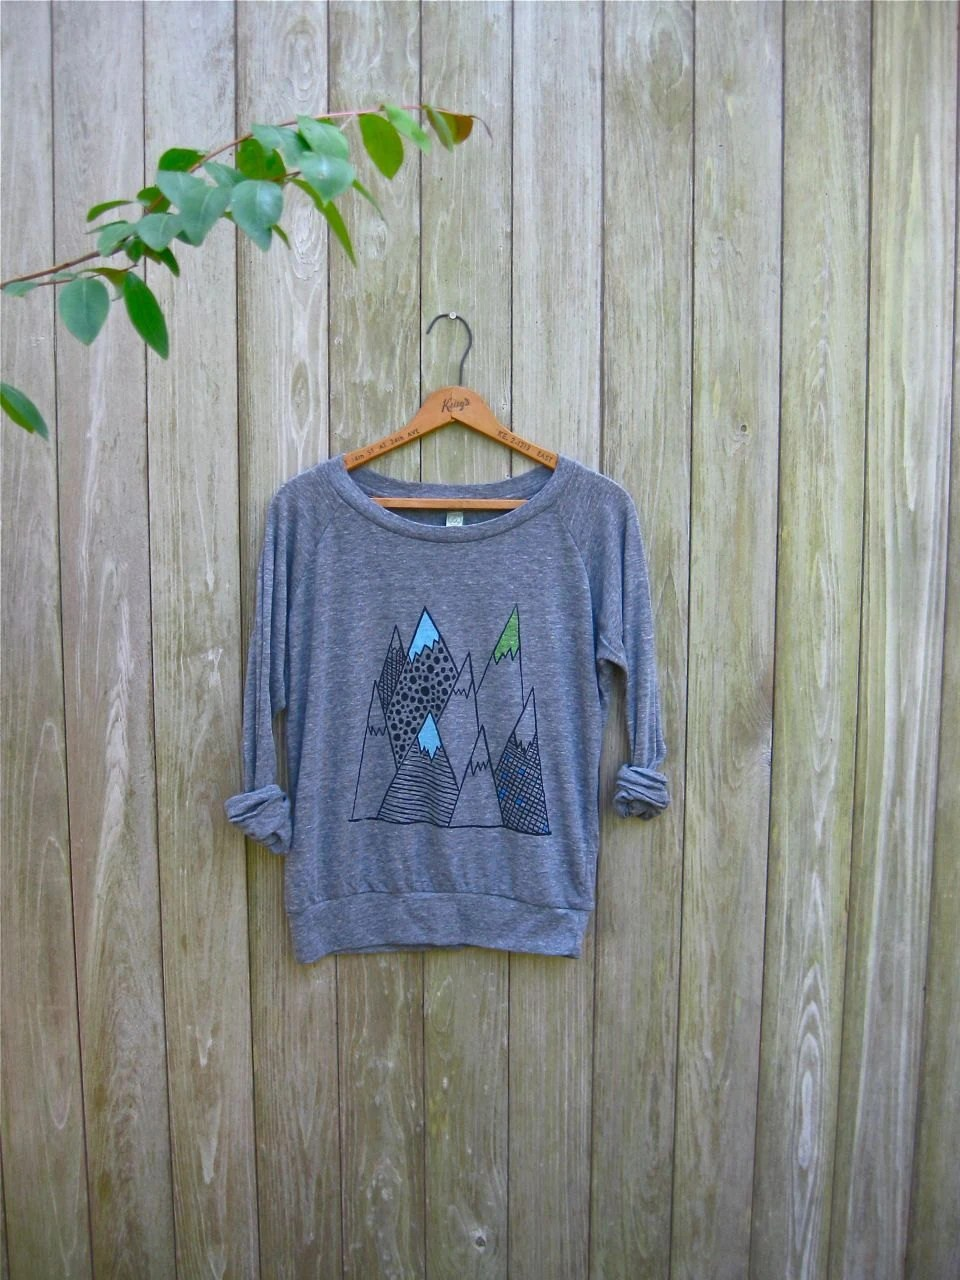 wild and free Mountain Shirt, Hiking Shirt, Camping Pullover, Yoga Top, S,M,L,XL - nicandthenewfie